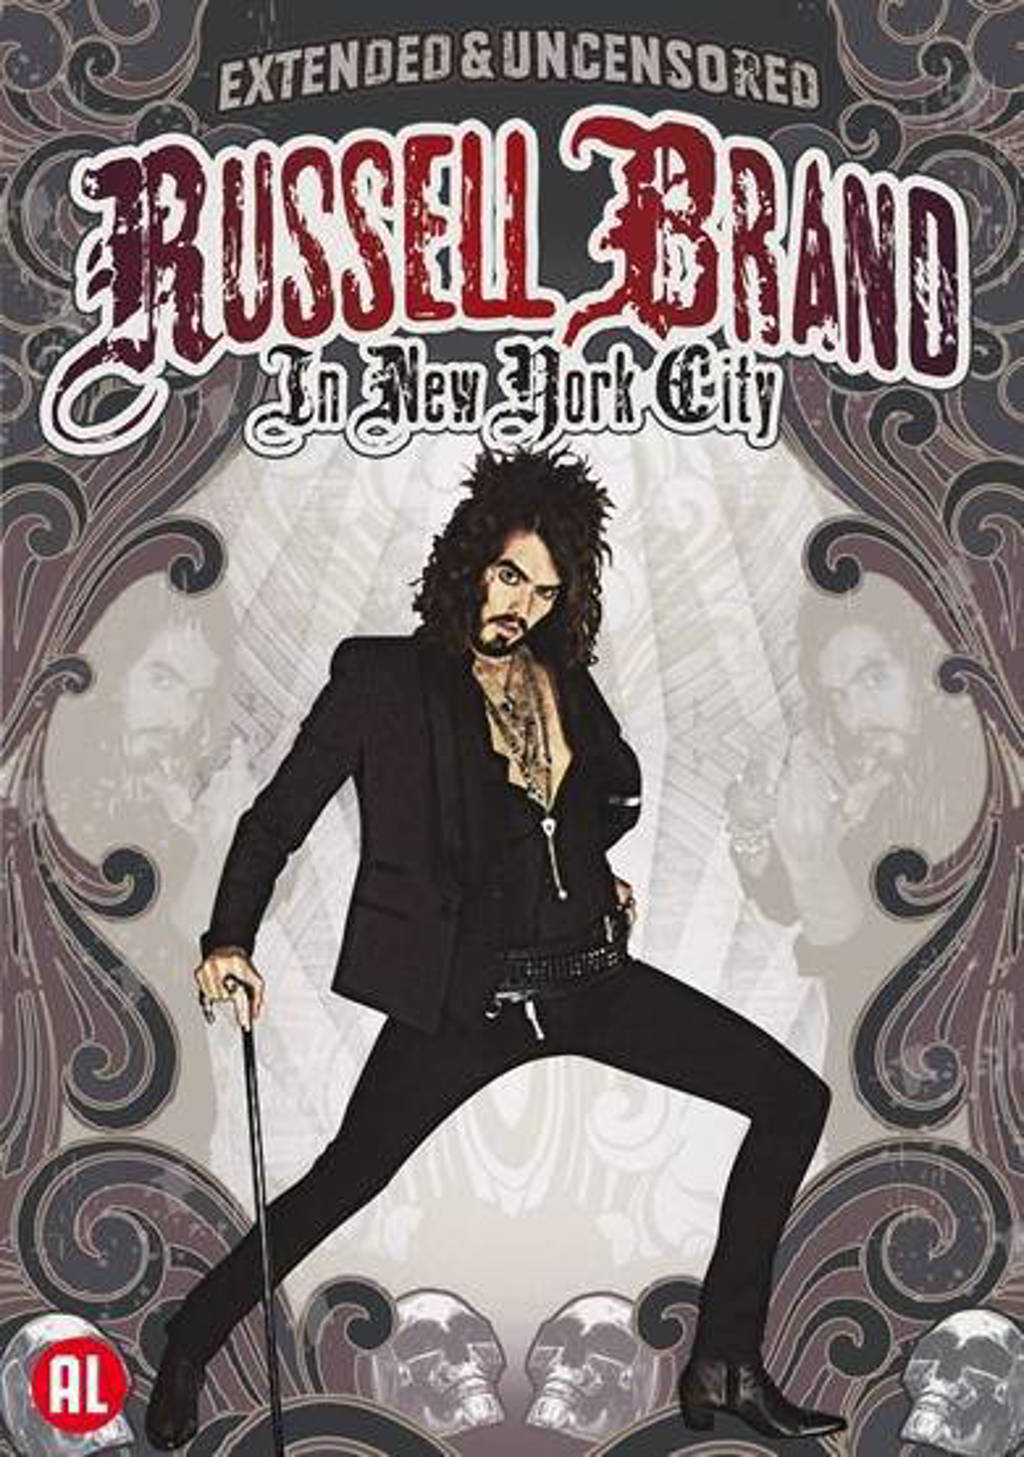 Russell Brand in NYC (DVD)